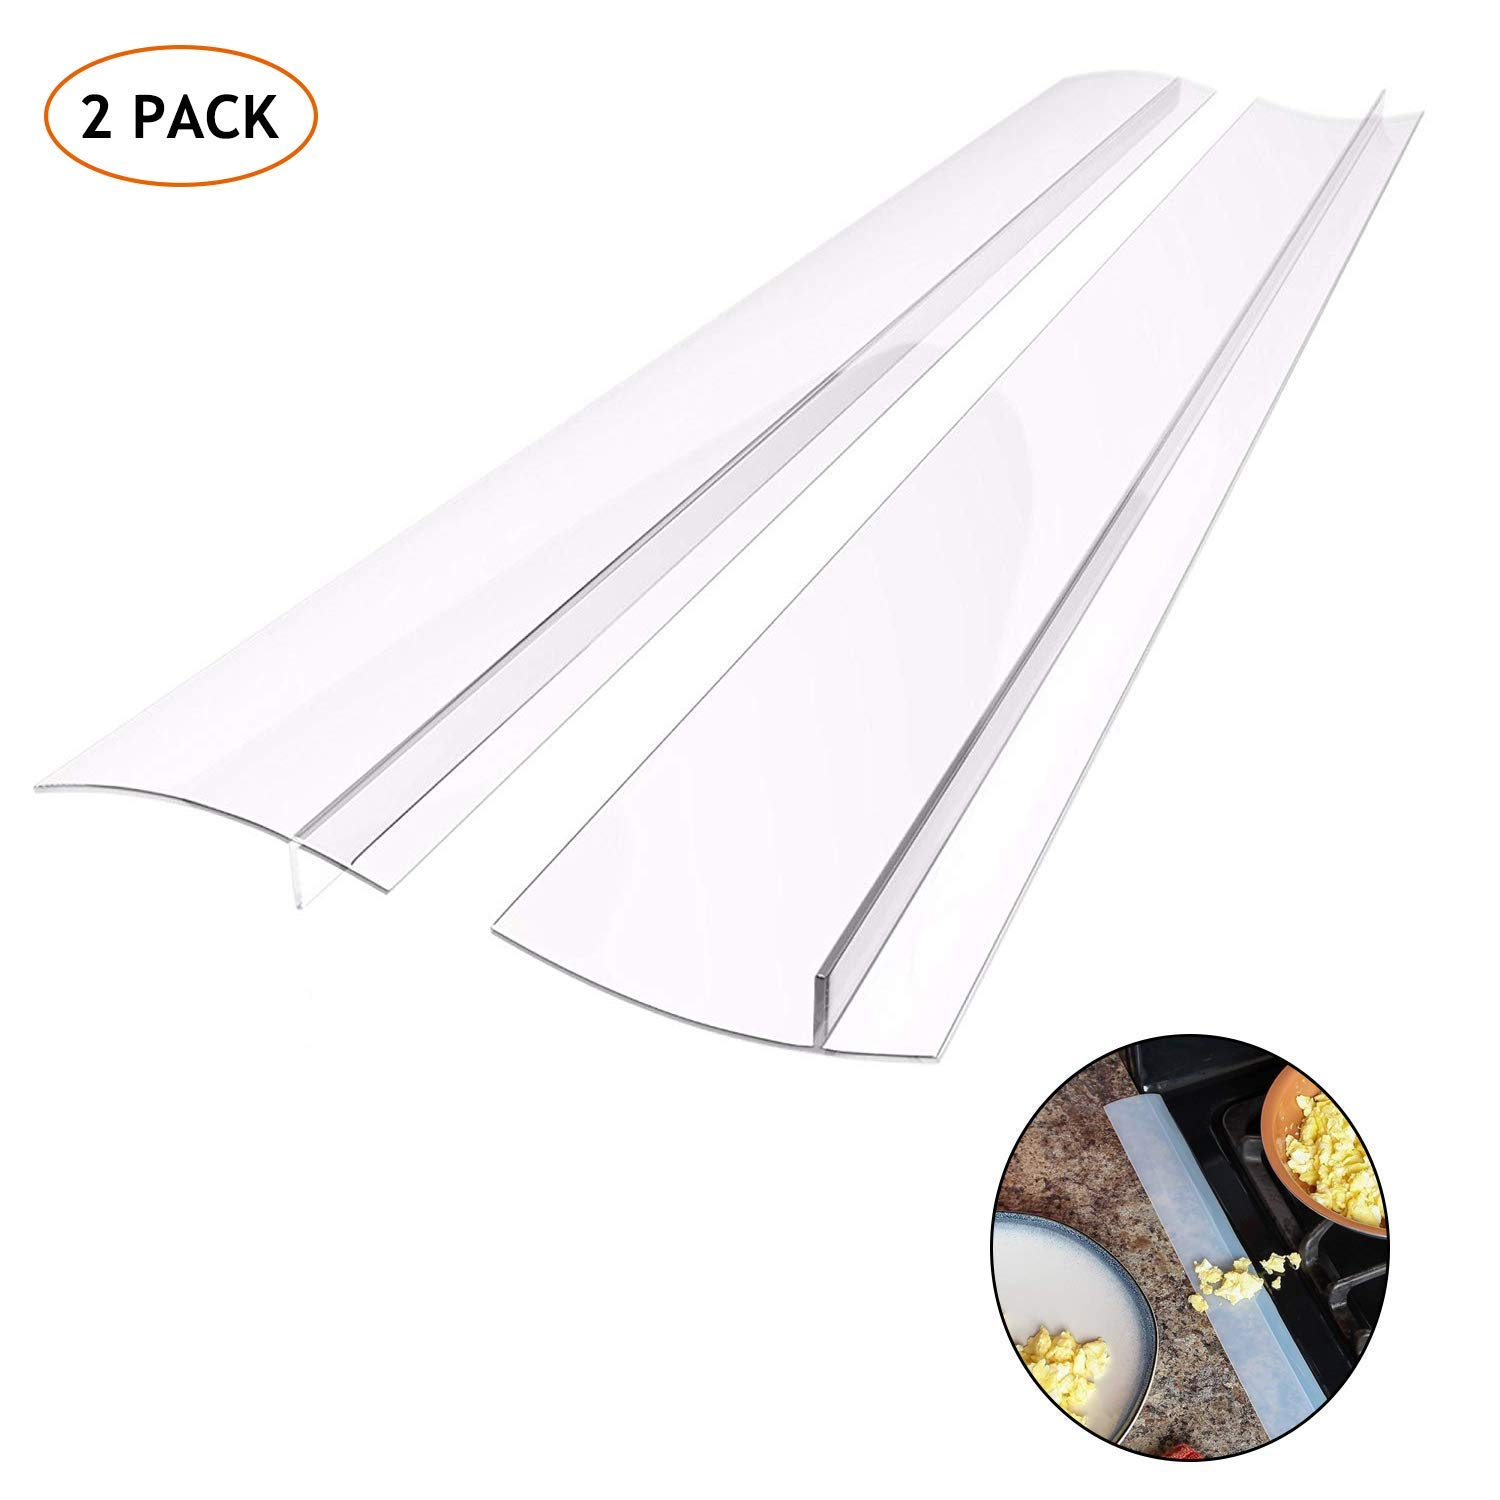 Kitchen Silicone Stove Counter Gap Cover, Easy Clean Heat Resistant Wide & Long Gap Filler, Seals Spills Between Counter, Stovetop, Oven, Washer & Dryer, Set of 2 (25 Inches, semi-clear)